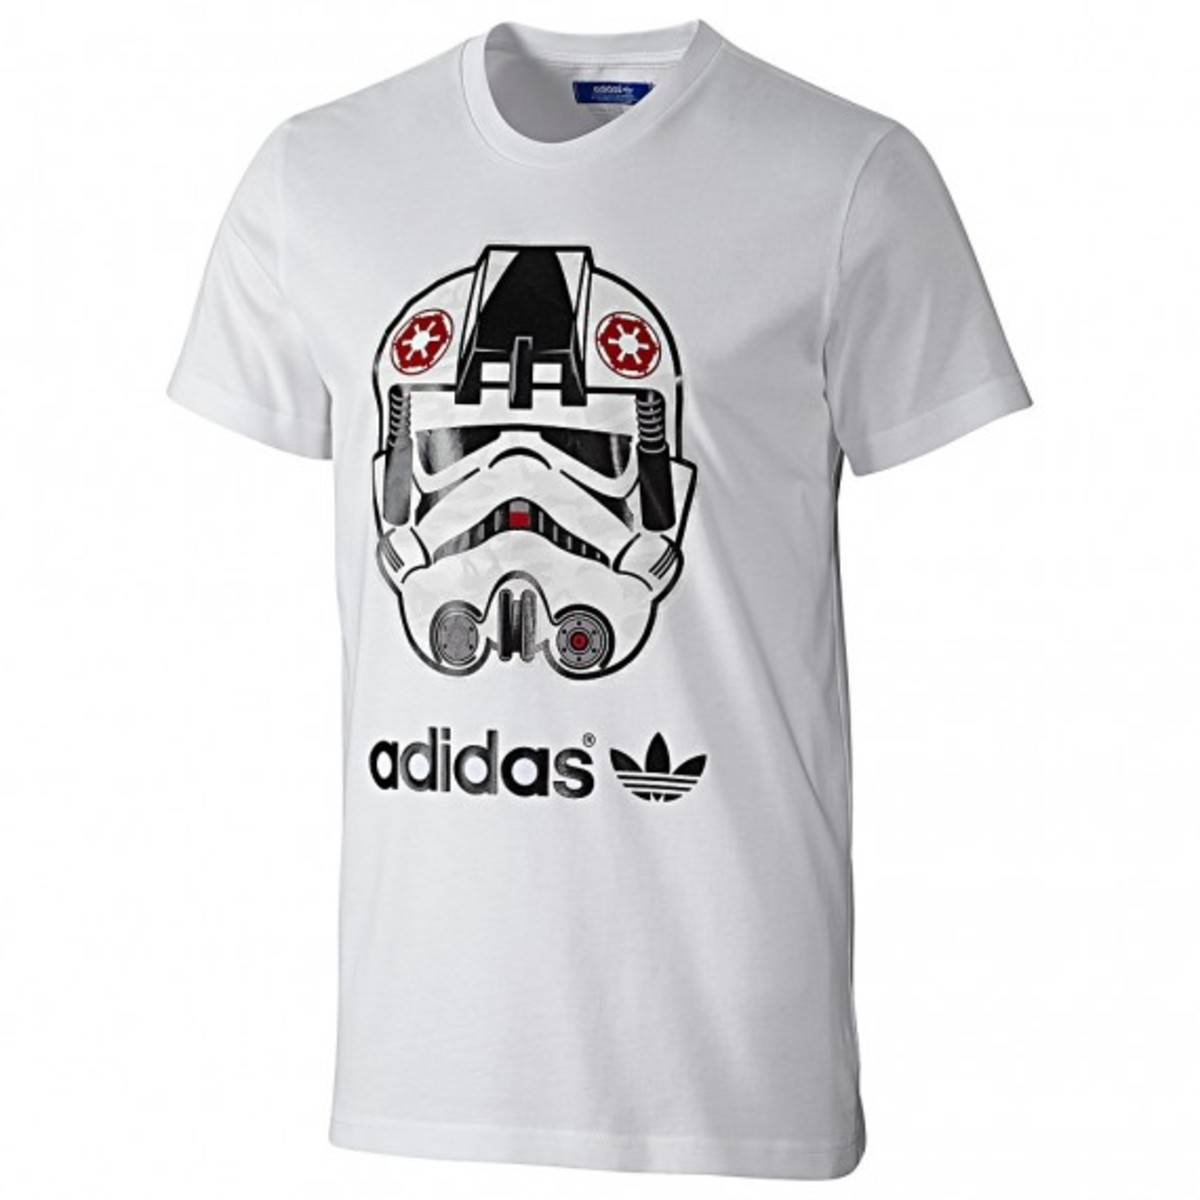 star-wars-adidas-originals-hoth-collection-apparel-available-now-17